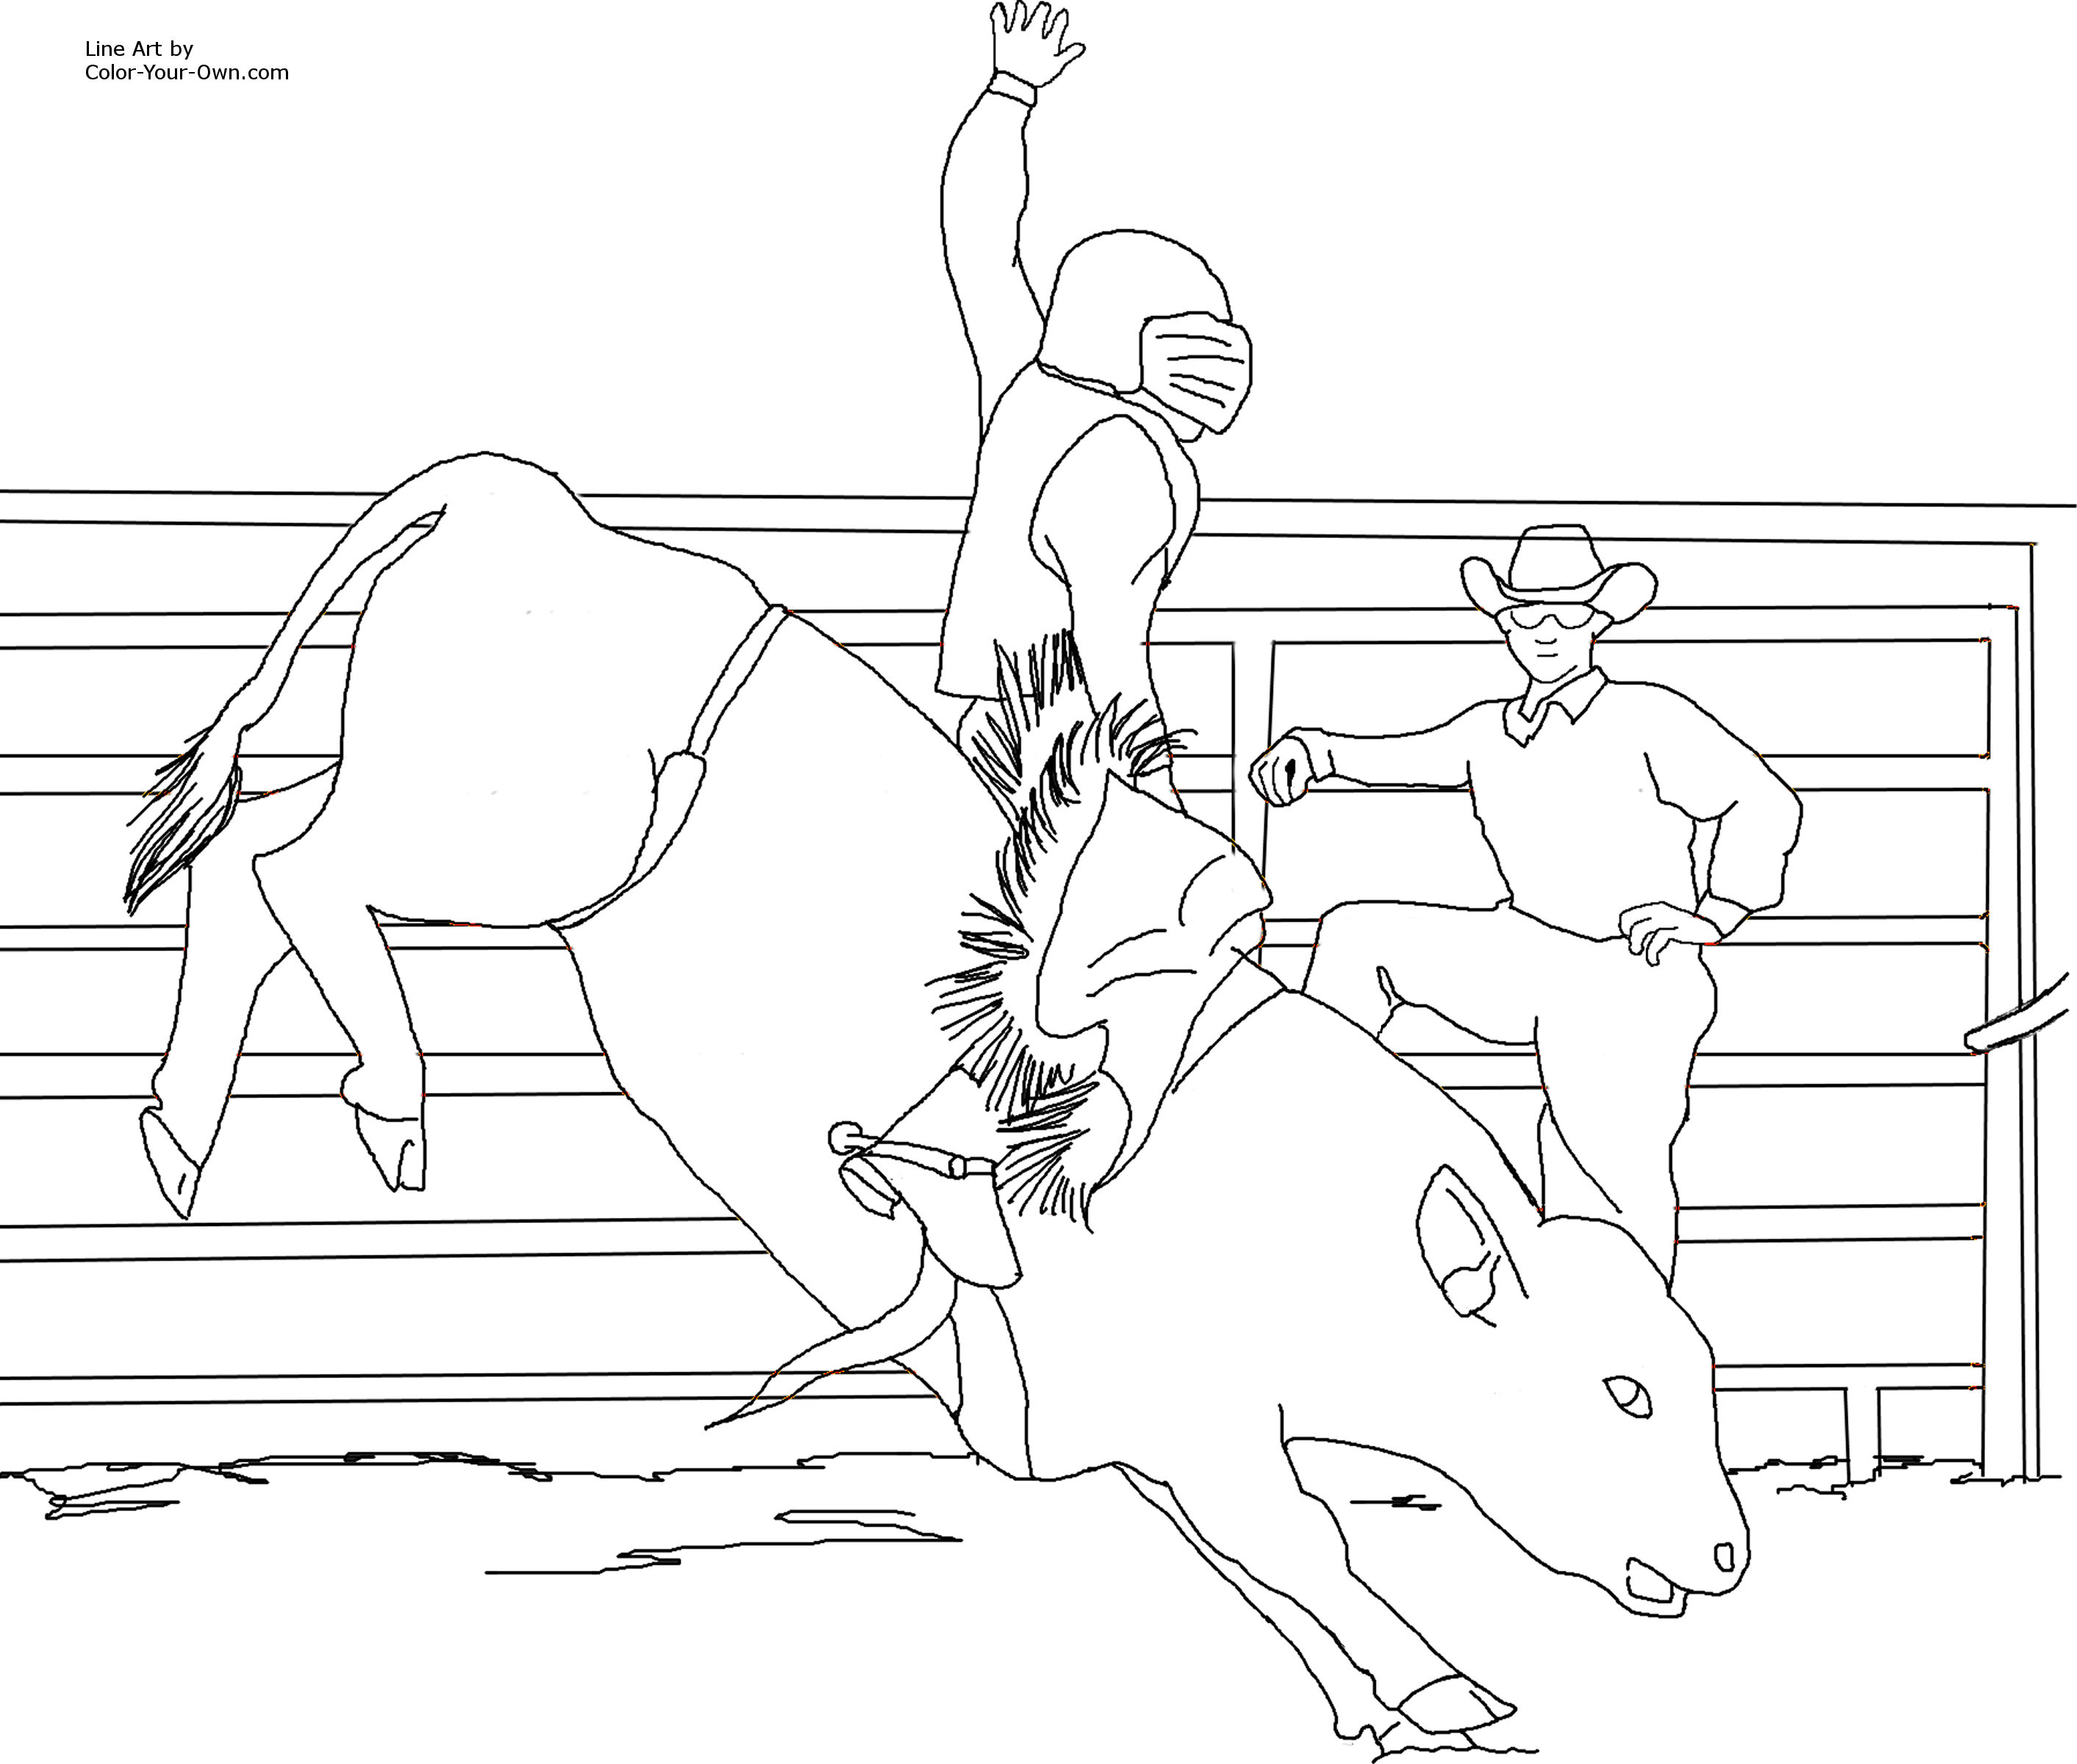 bull riding coloring pages bull riding rodeo coloring page free printable coloring riding bull coloring pages